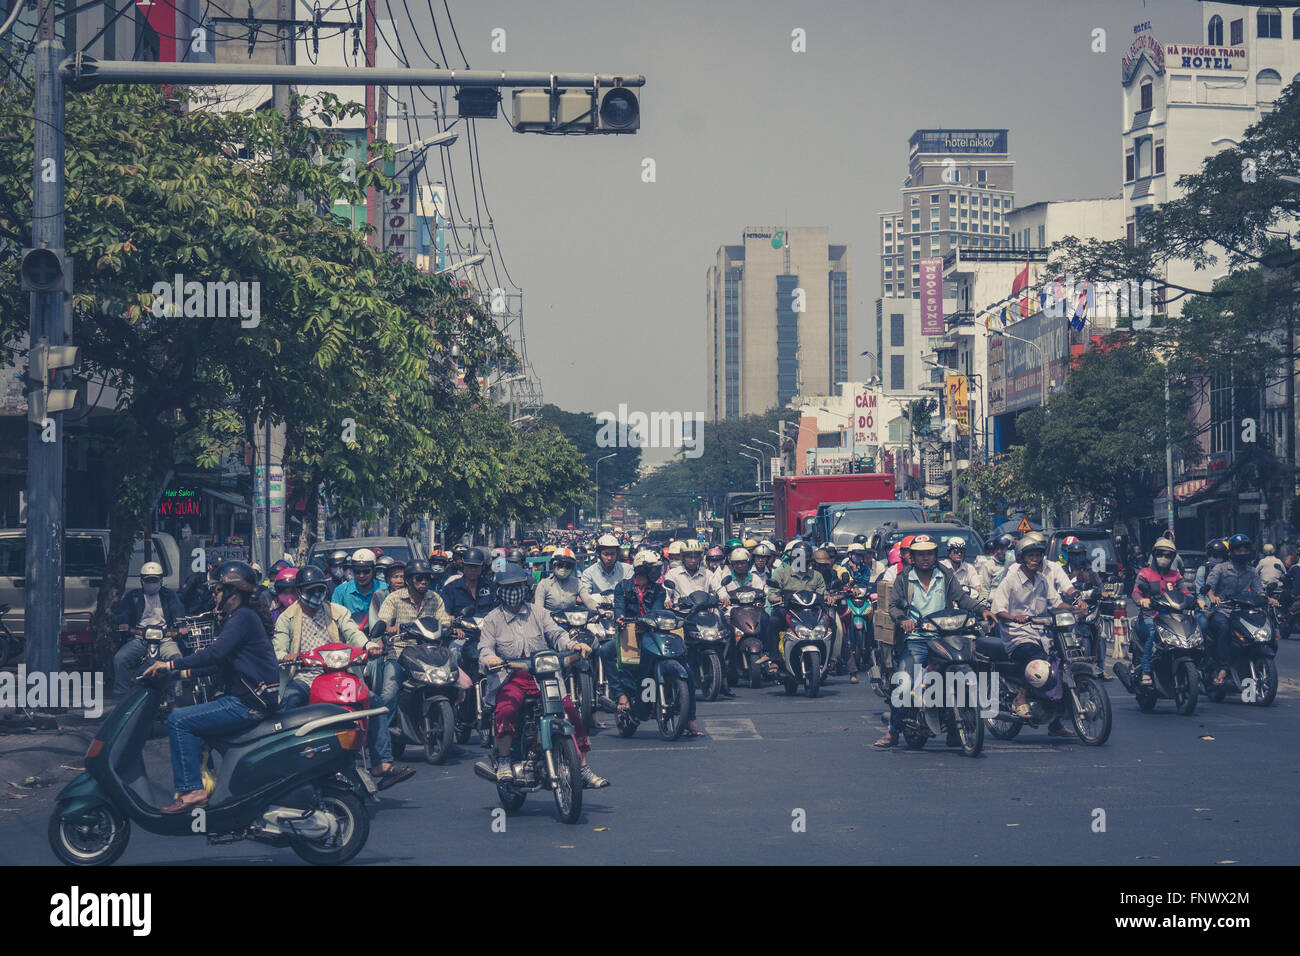 many scooter drivers , motorbike traffic , streets of saigon, vietnam - Stock Image